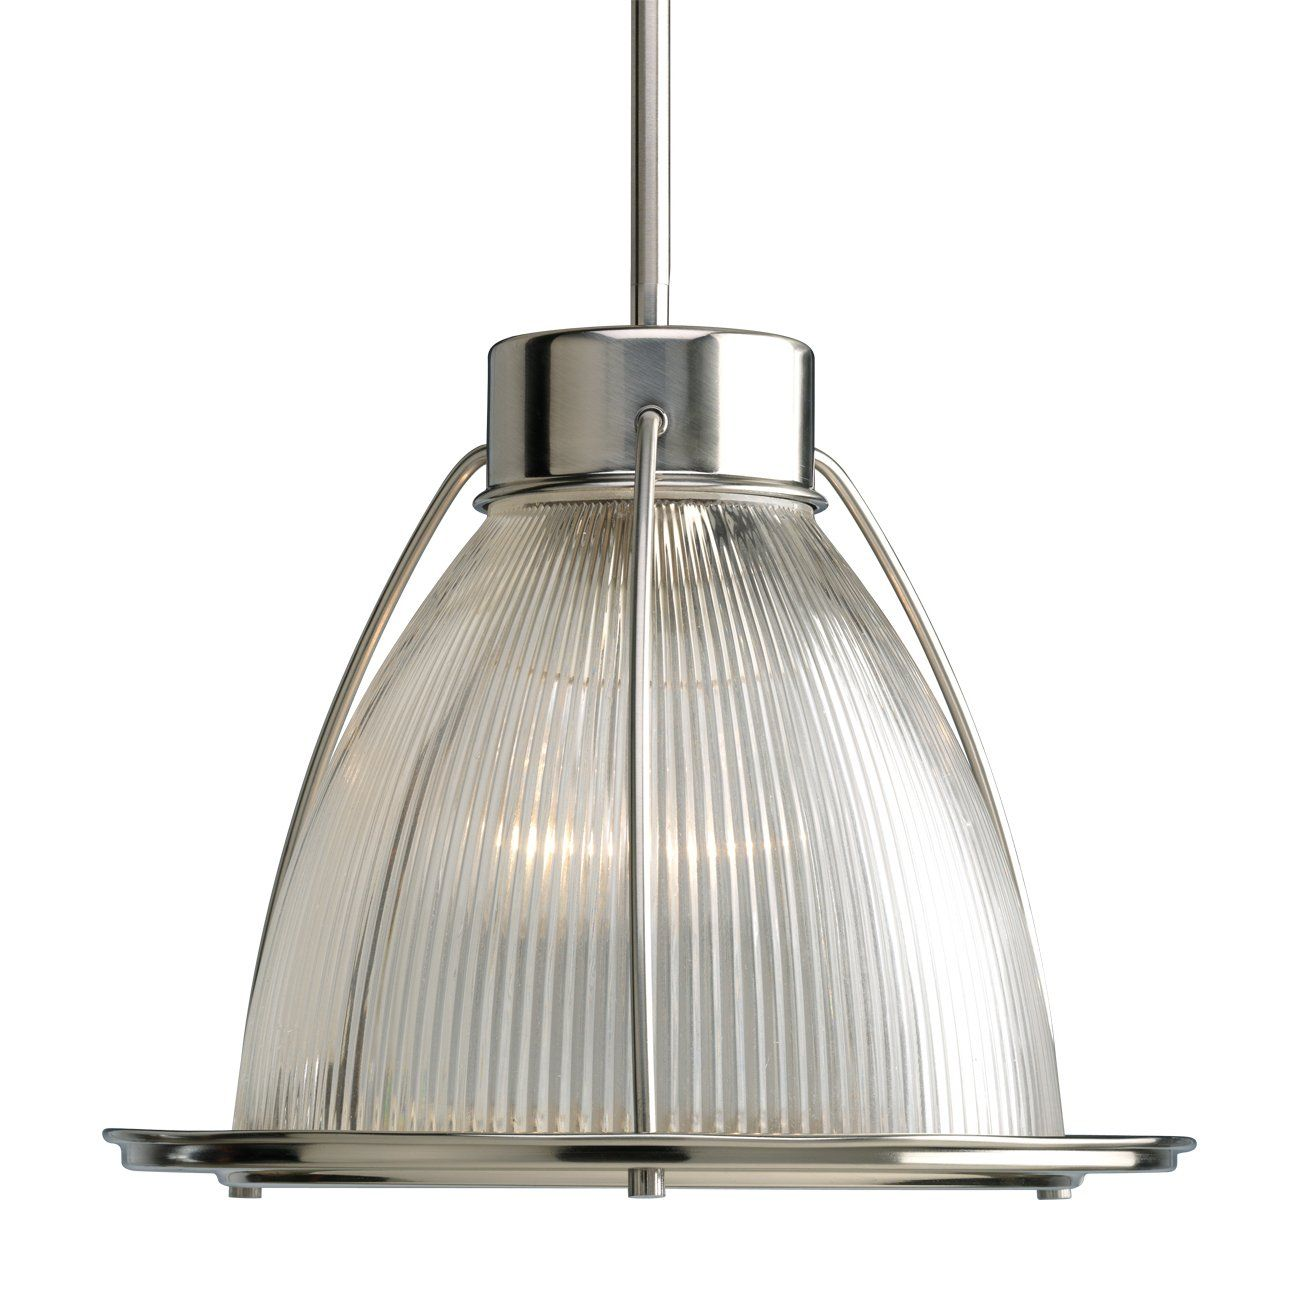 Progress lighting p kitchen mini pendant brushed nickel